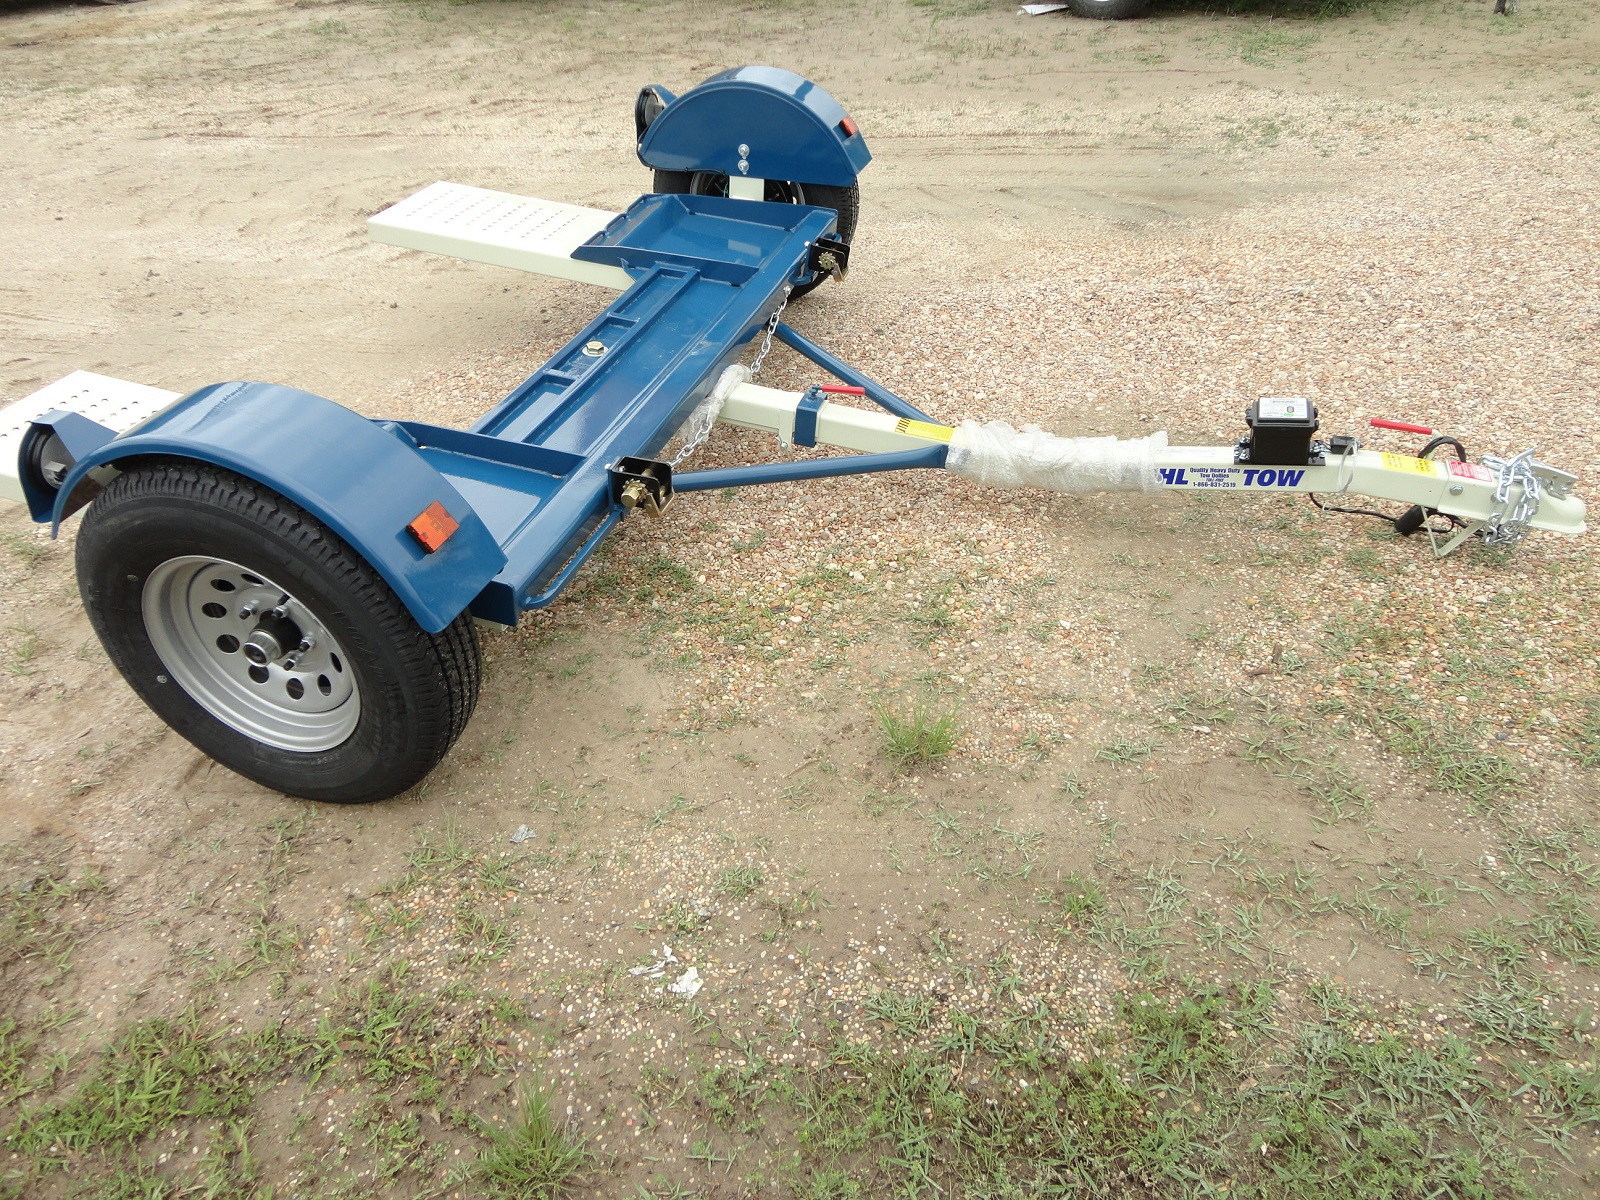 2018 Tow Dolly